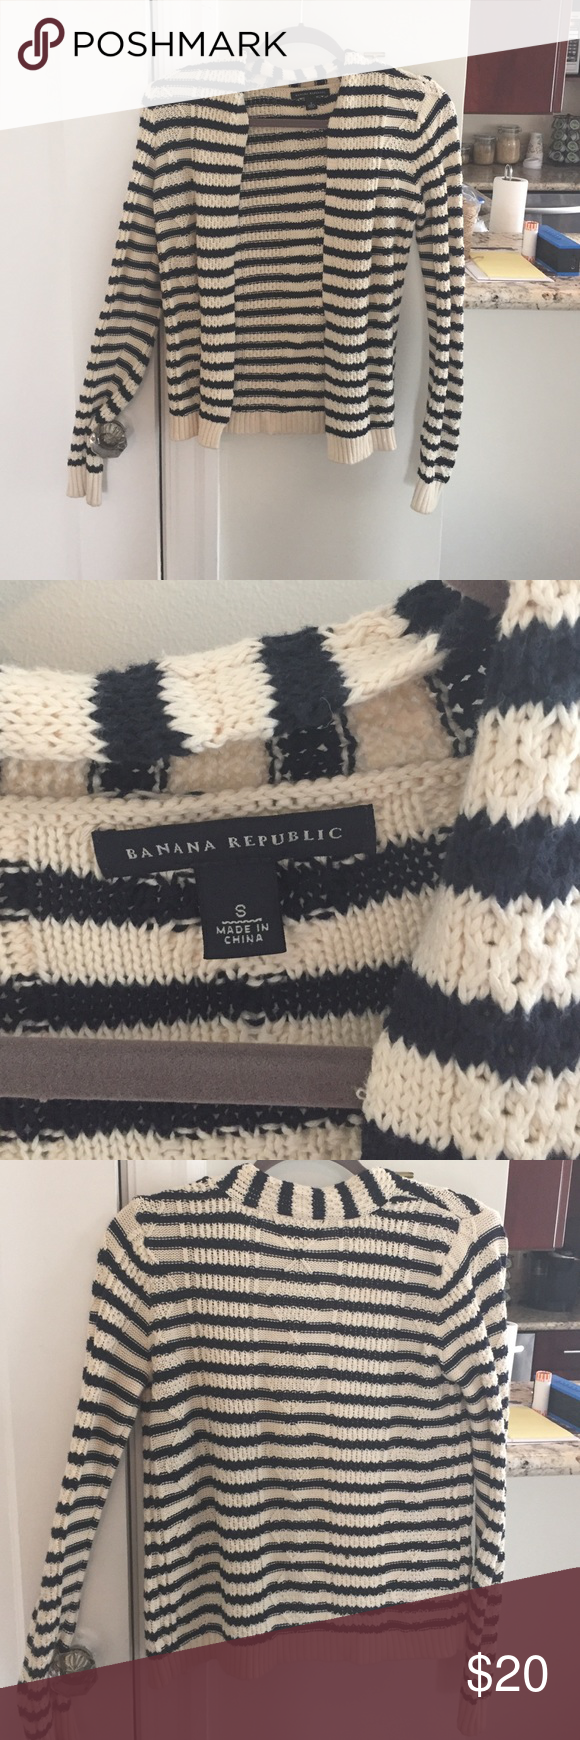 Banana republic striped sweater Cream and navy striped sweater. Worn a few times to work. Comfortable and relaxed fit,m. Smoke free and pet free home Banana Republic Sweaters Cardigans